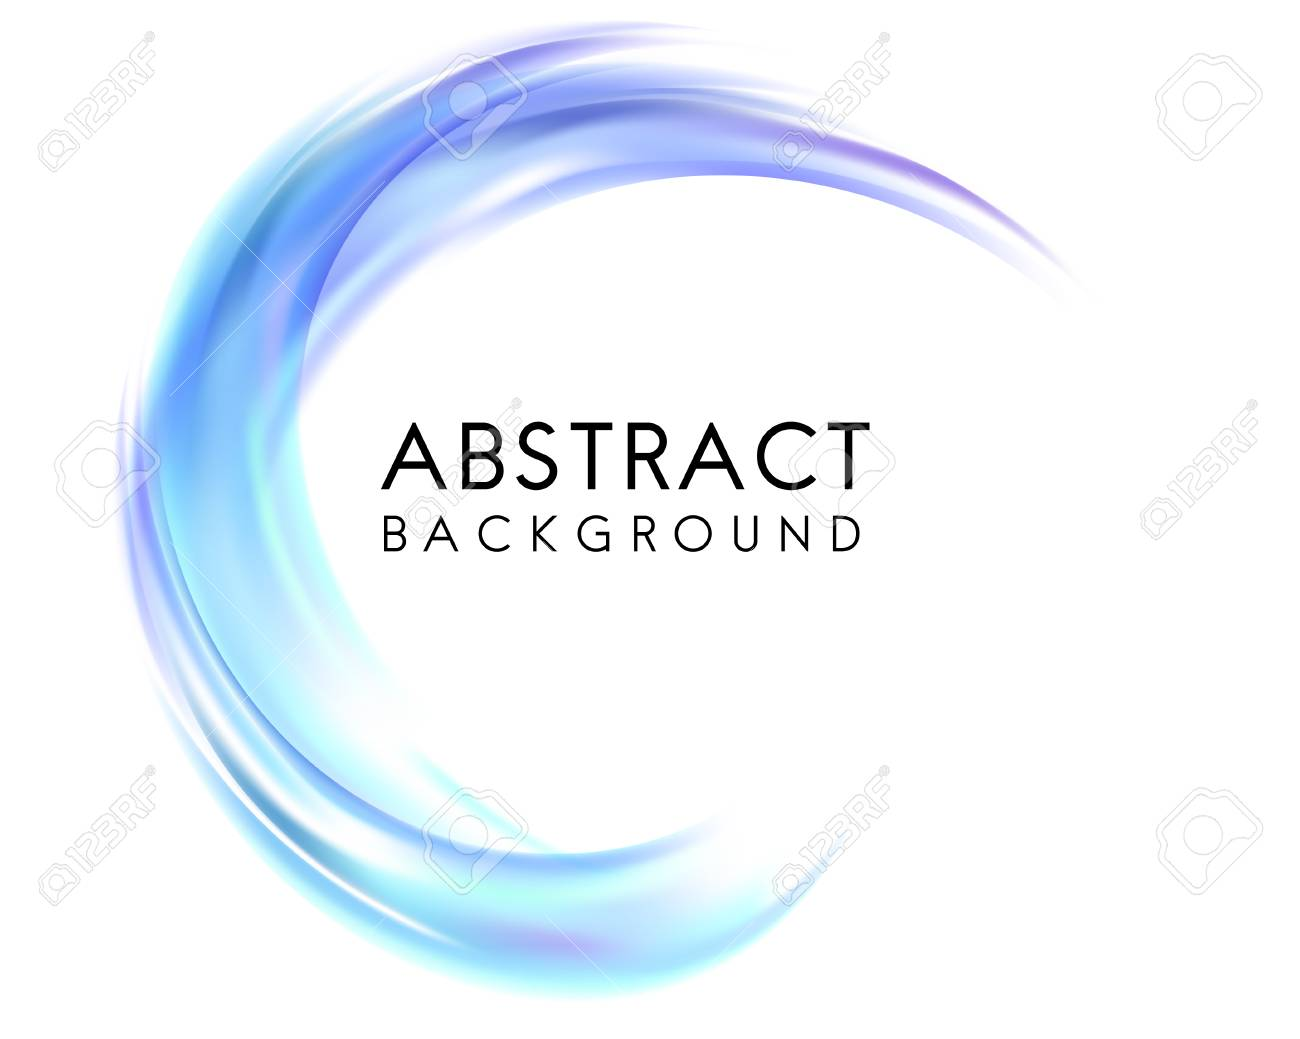 Abstract background design in blue - 115280301